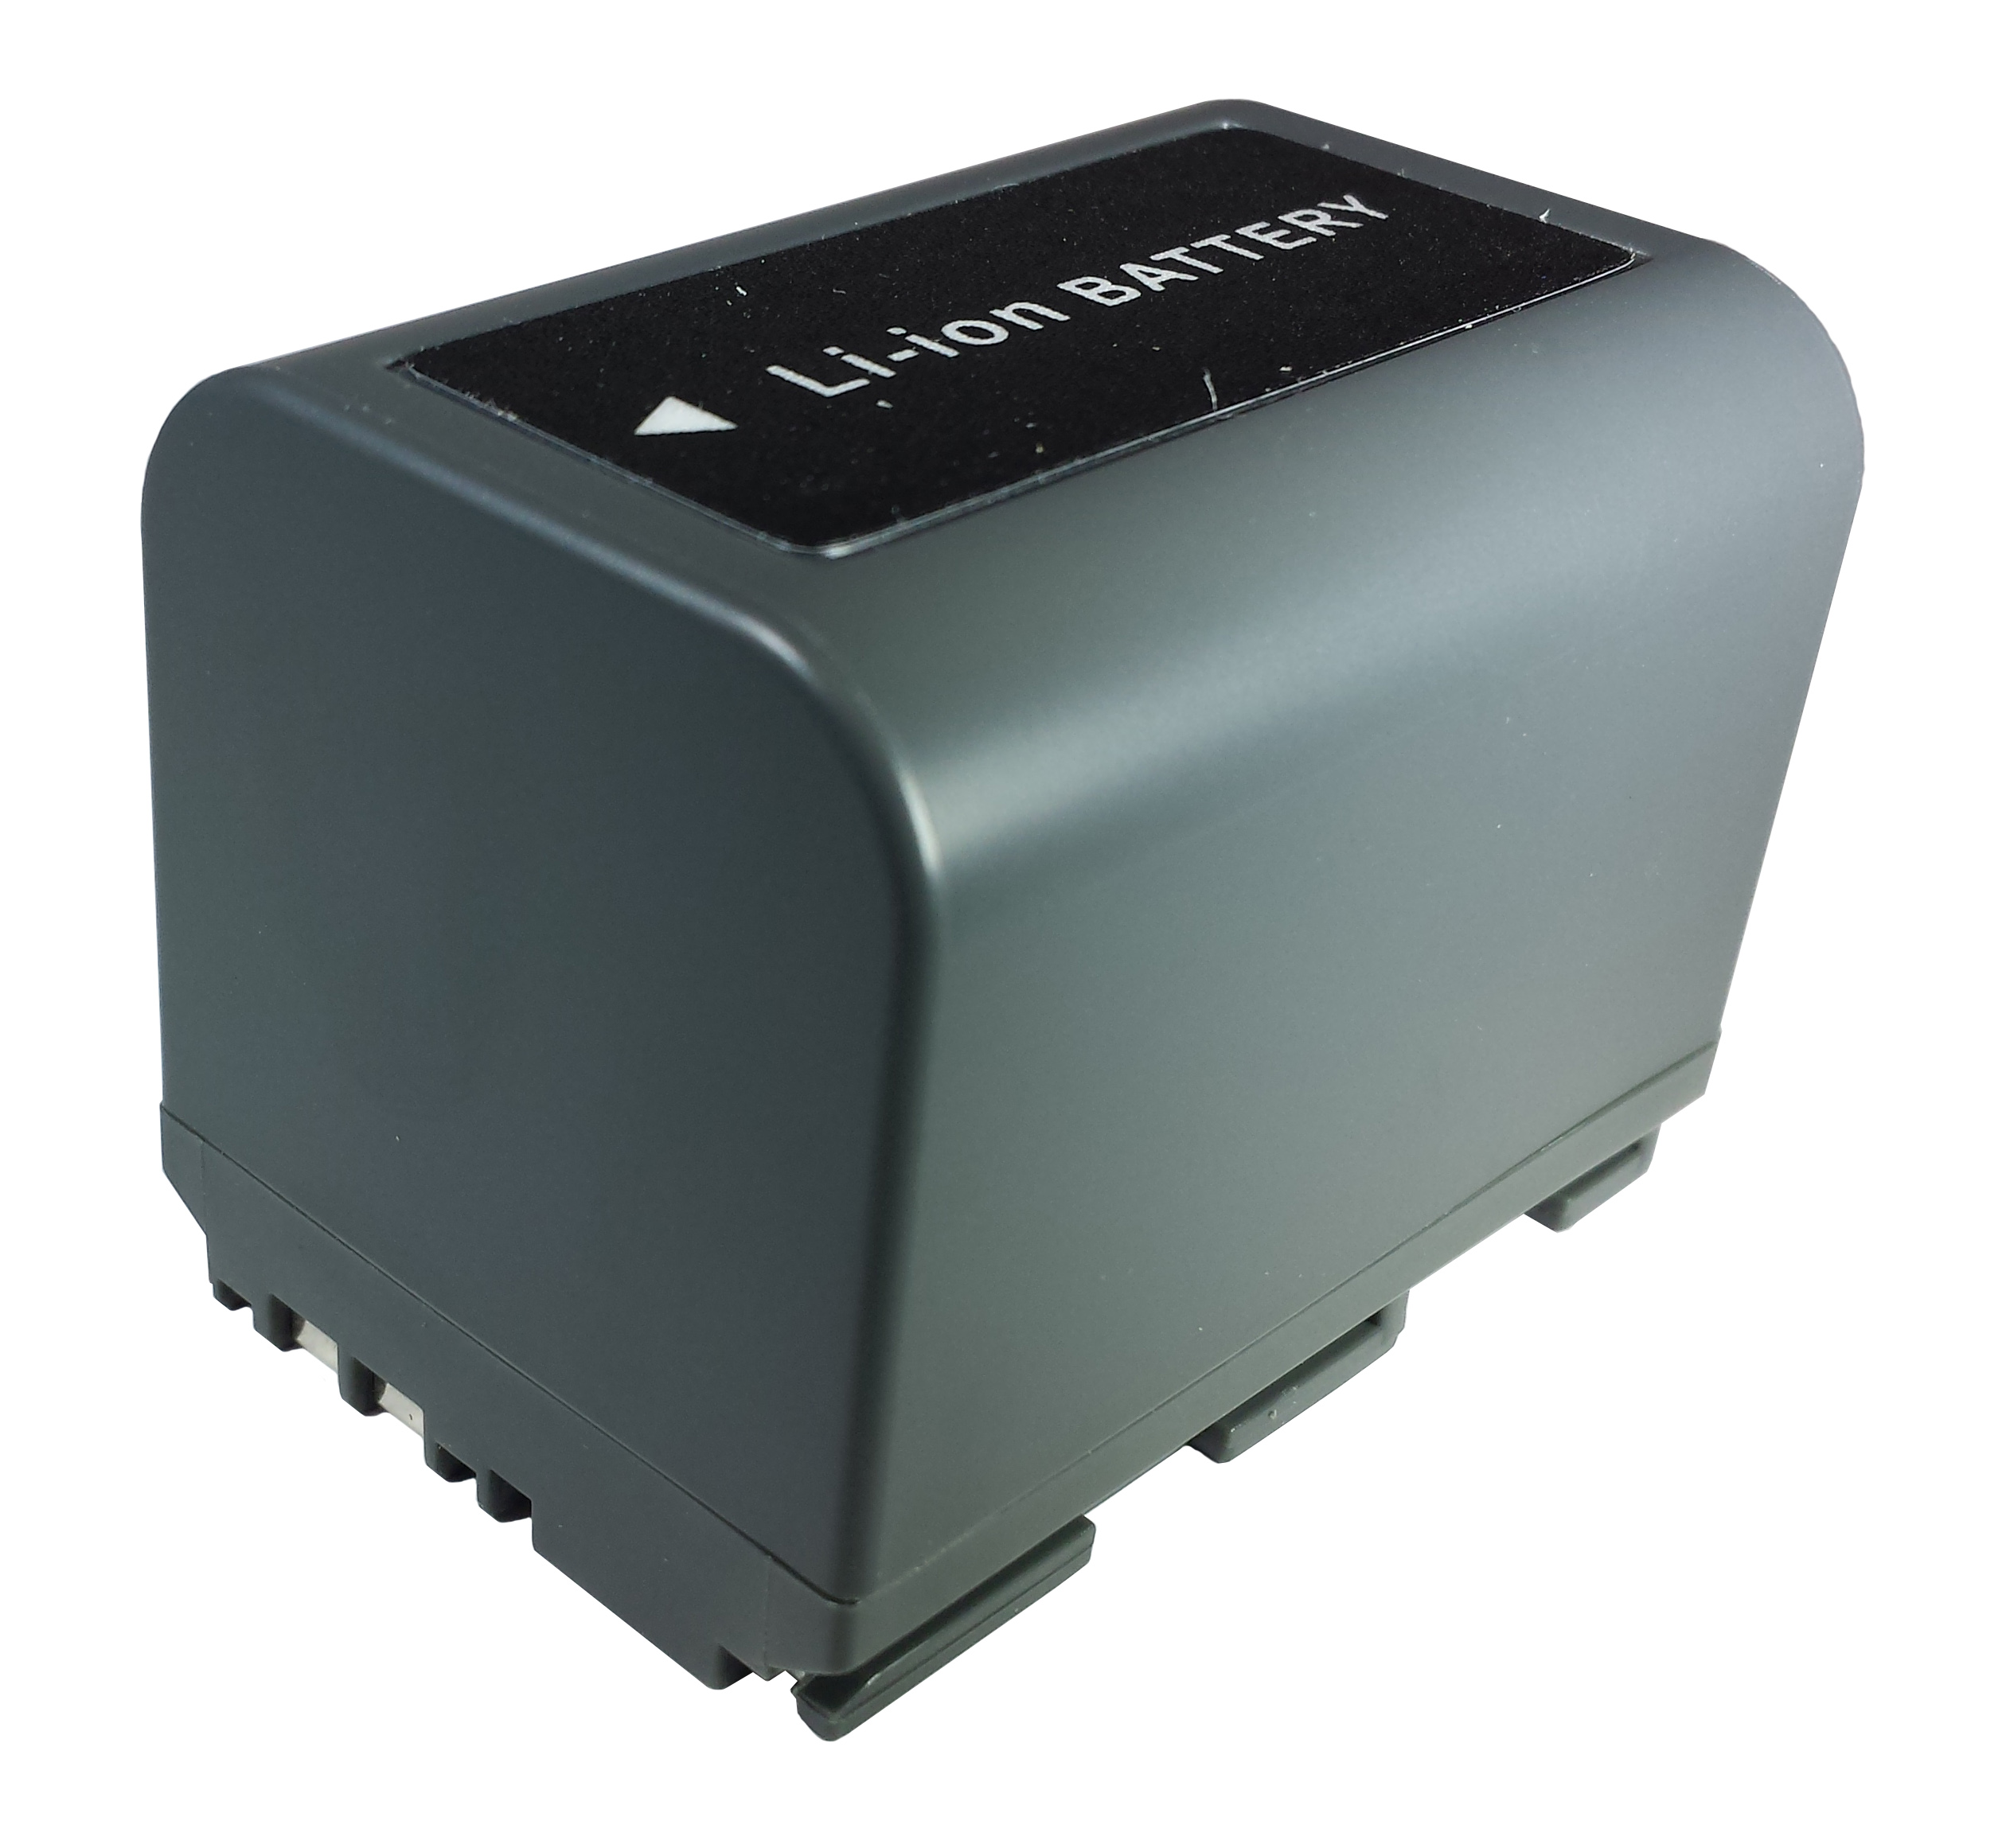 Canon ZR-65MC Camcorder Battery Lithium-Ion (3000 mAh)  - Replacement for Canon BP-522 Battery